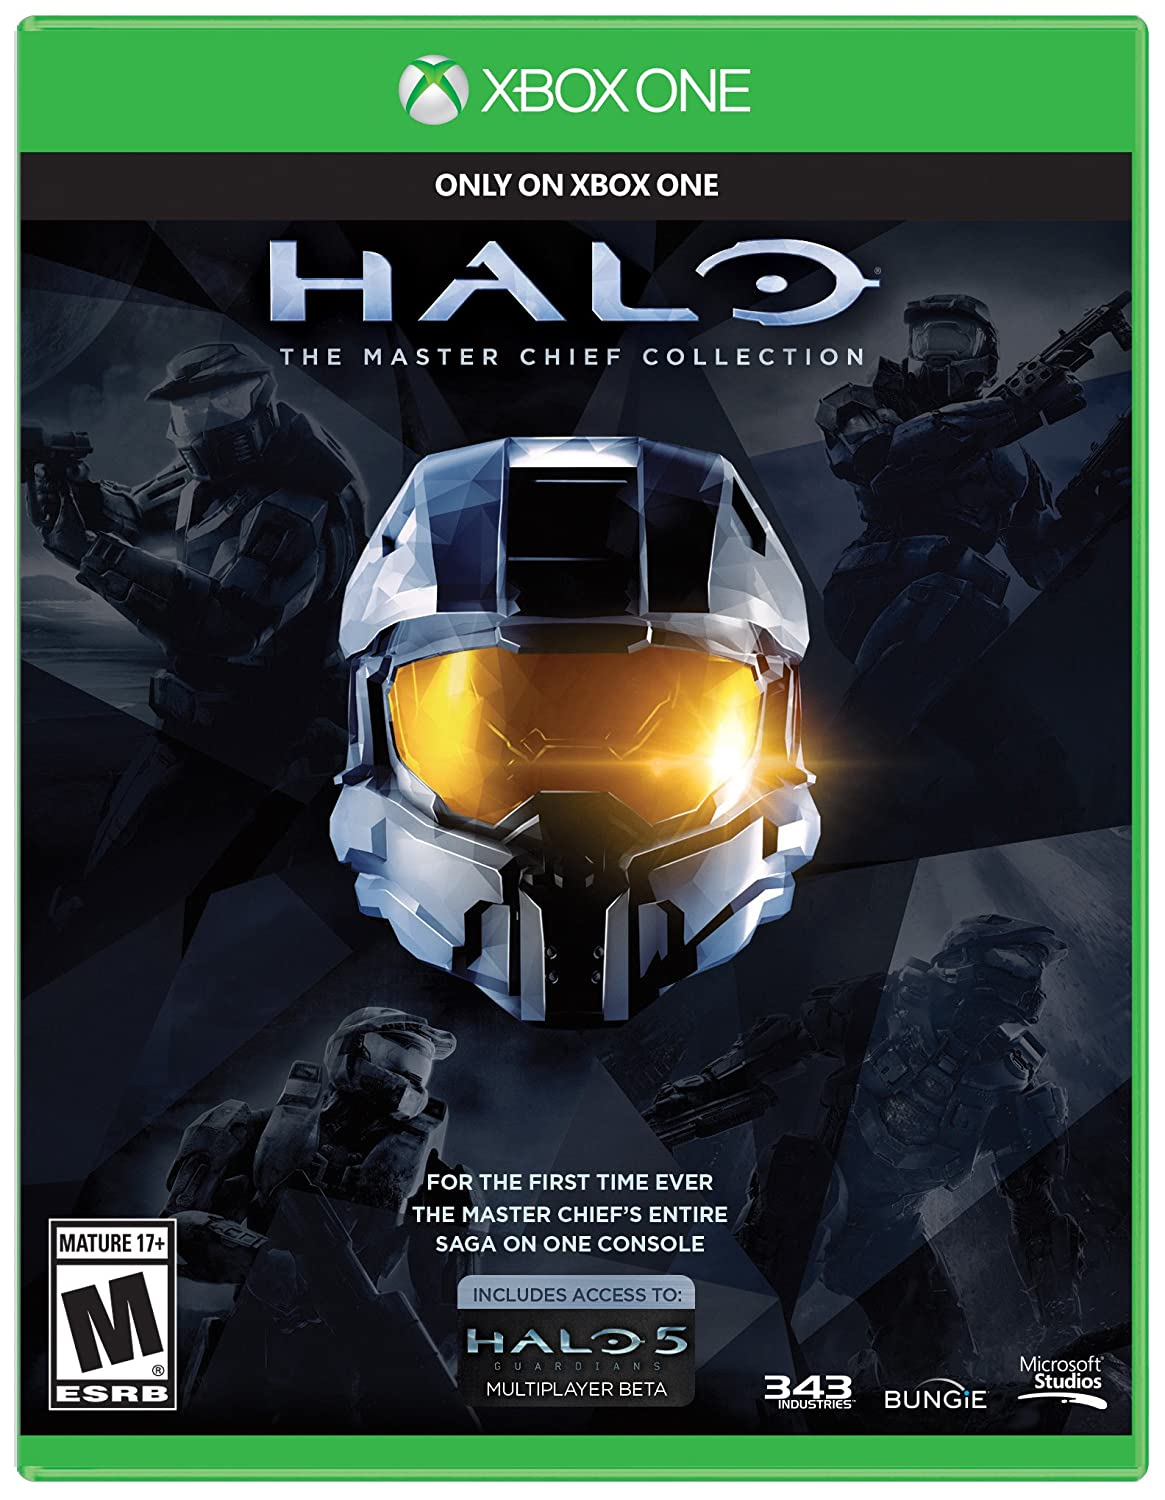 Amazon.com: Halo: The Master Chief Collection: Xbox One: Video Games